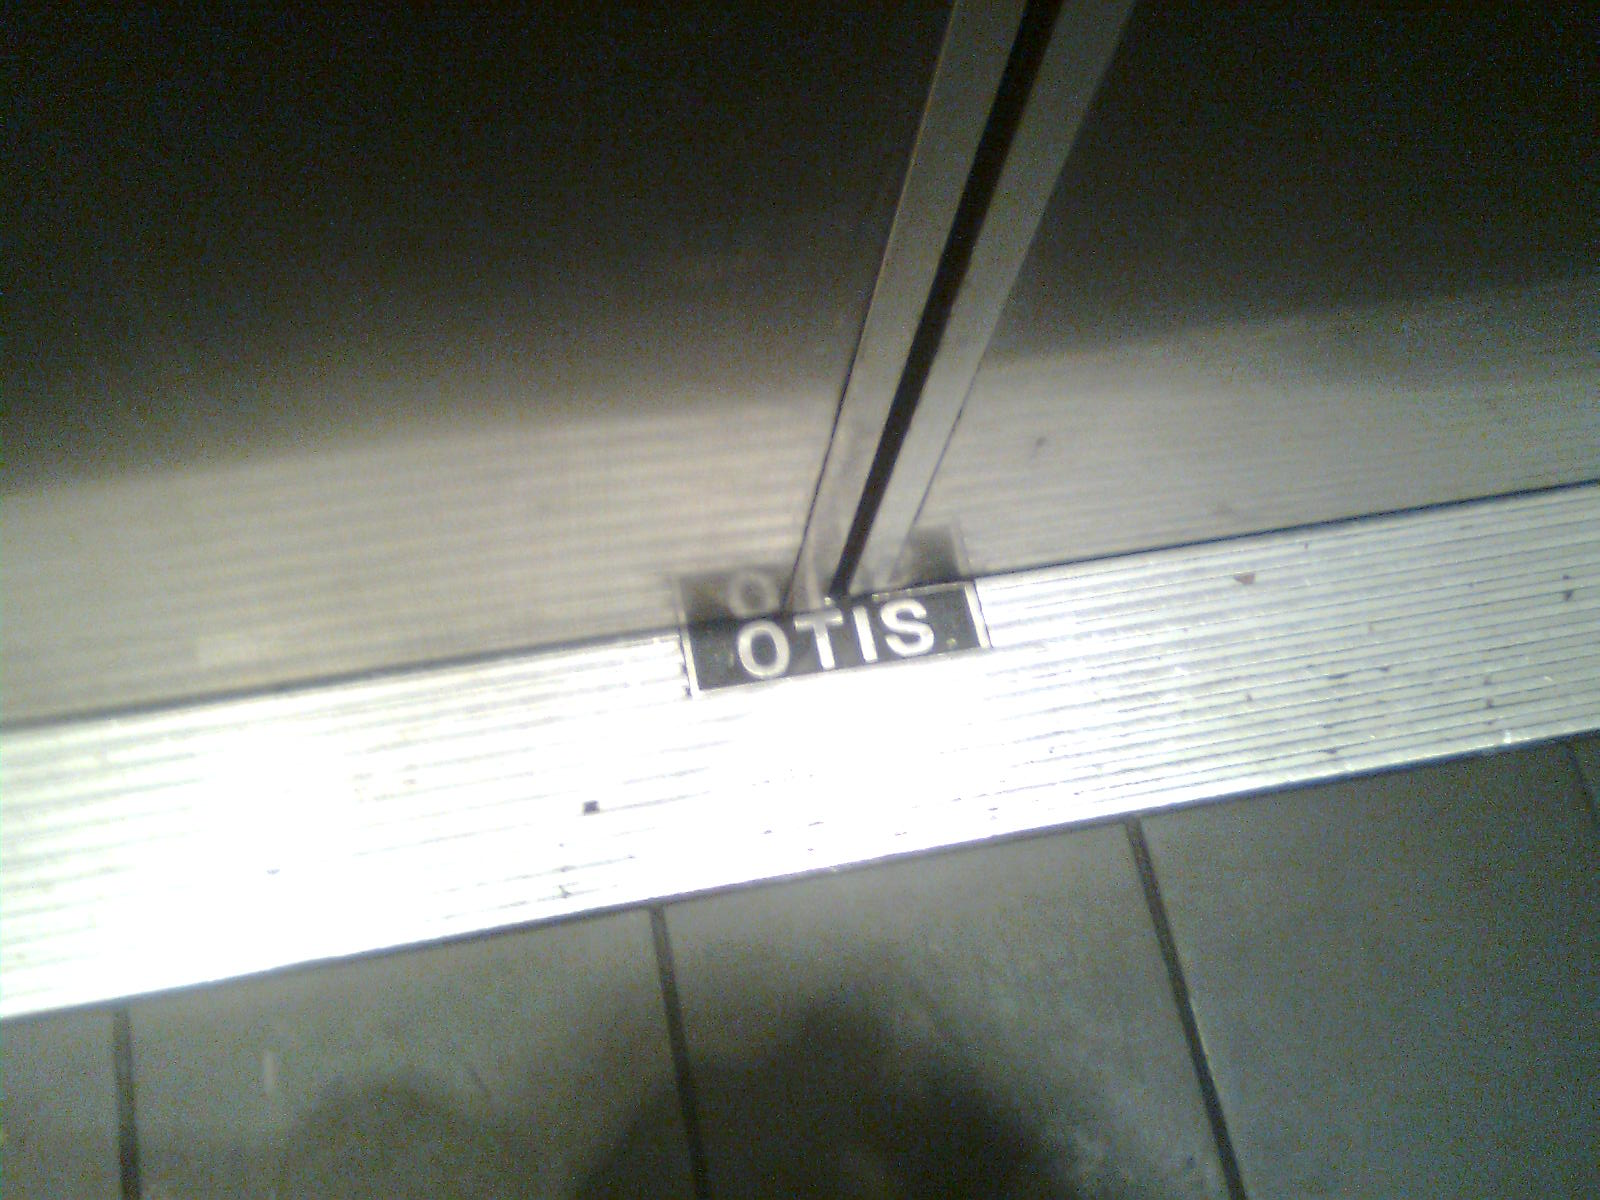 elijah otis elevators Otis: a visual timeline home: about otis: otis news: global otis in the community ã'â©2016 otis elevator company.